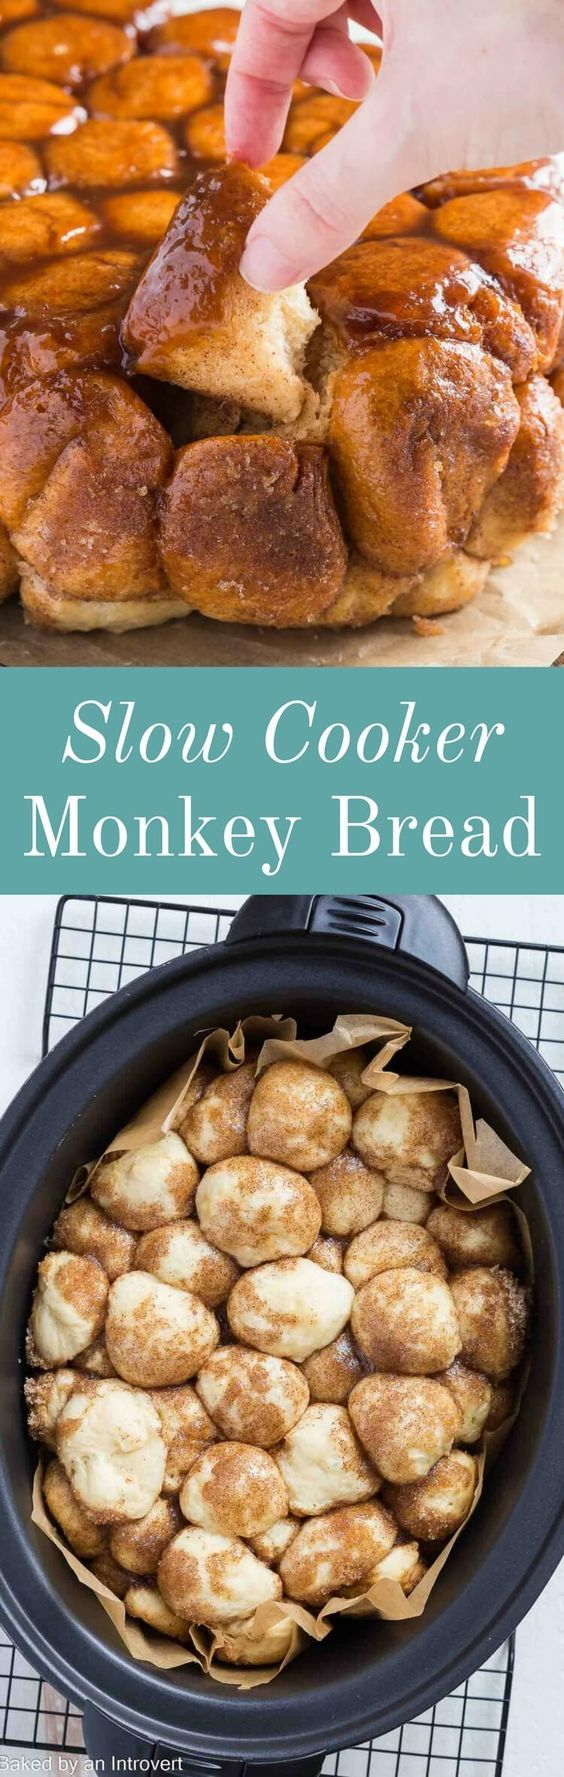 Slow Cooker Monkey Bread is super easy to make! Soft, fluffy pull-apart bread covered in gooey melted sugar is always a huge hit. via @introvertbaker